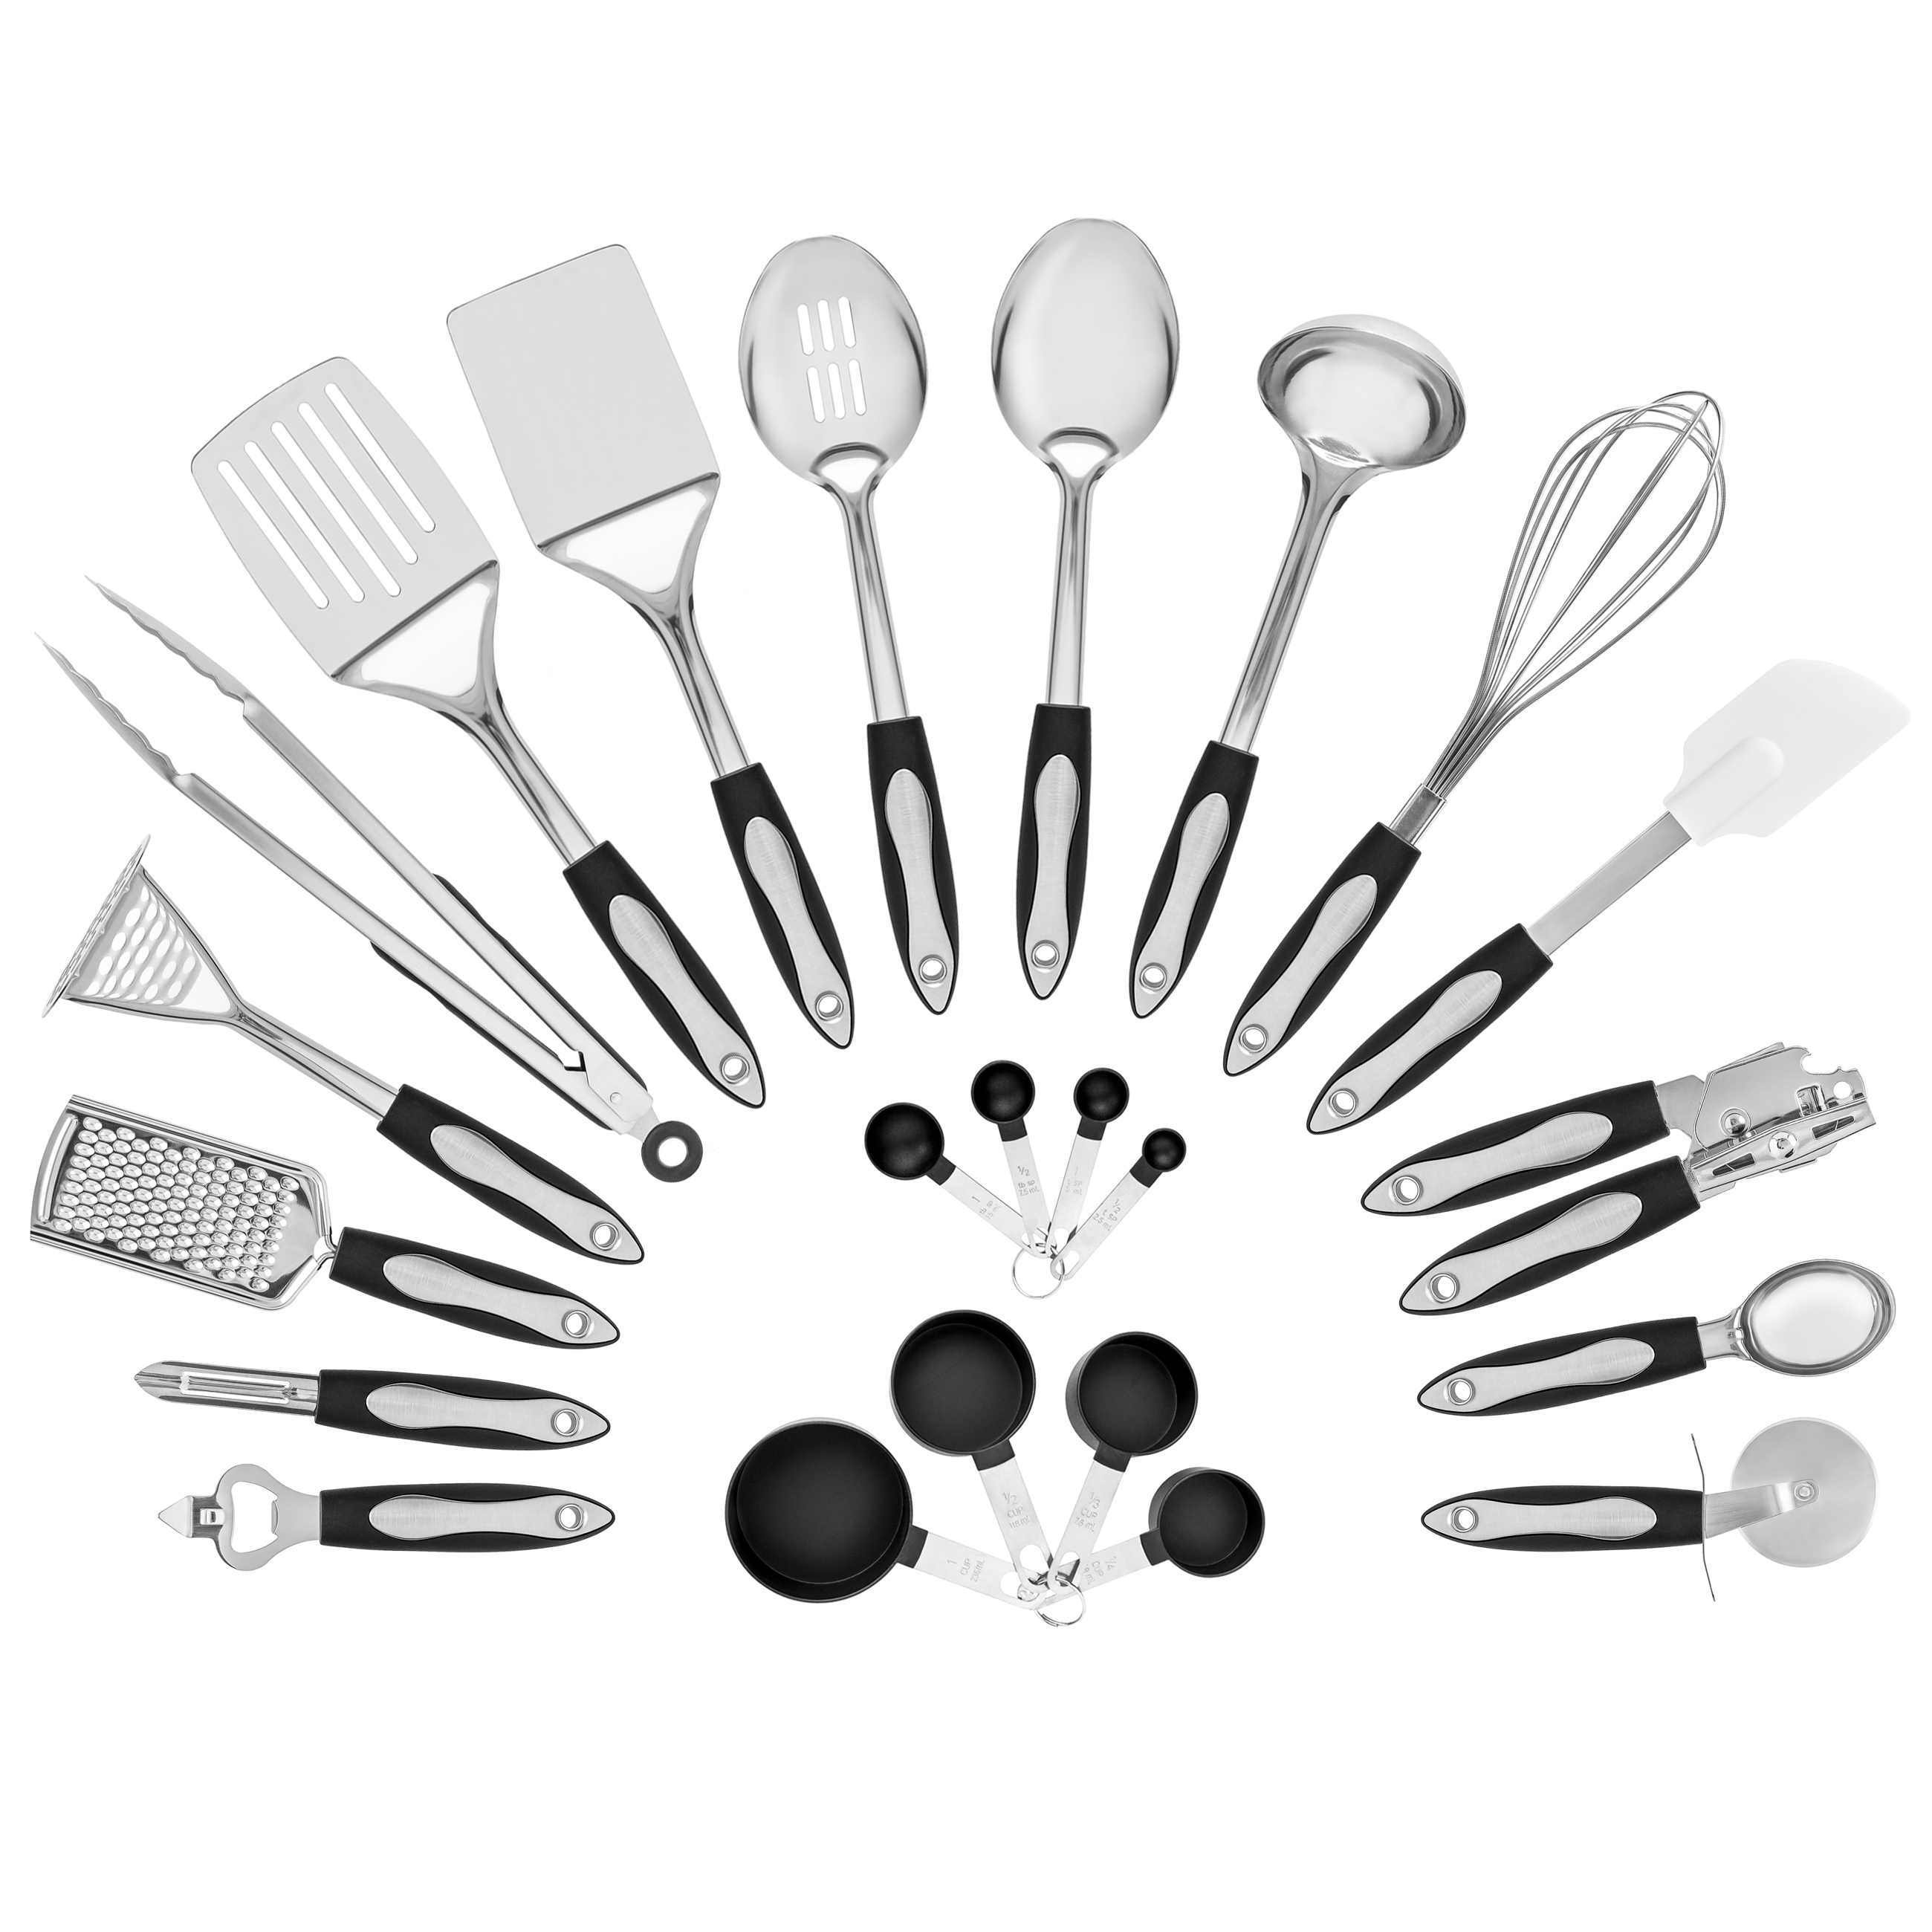 Best Choice Products Set of 23 Stainless Steel Kitchen Cookware Utensil Set w  Spatulas, Measuring Cups,... by Best Choice Products